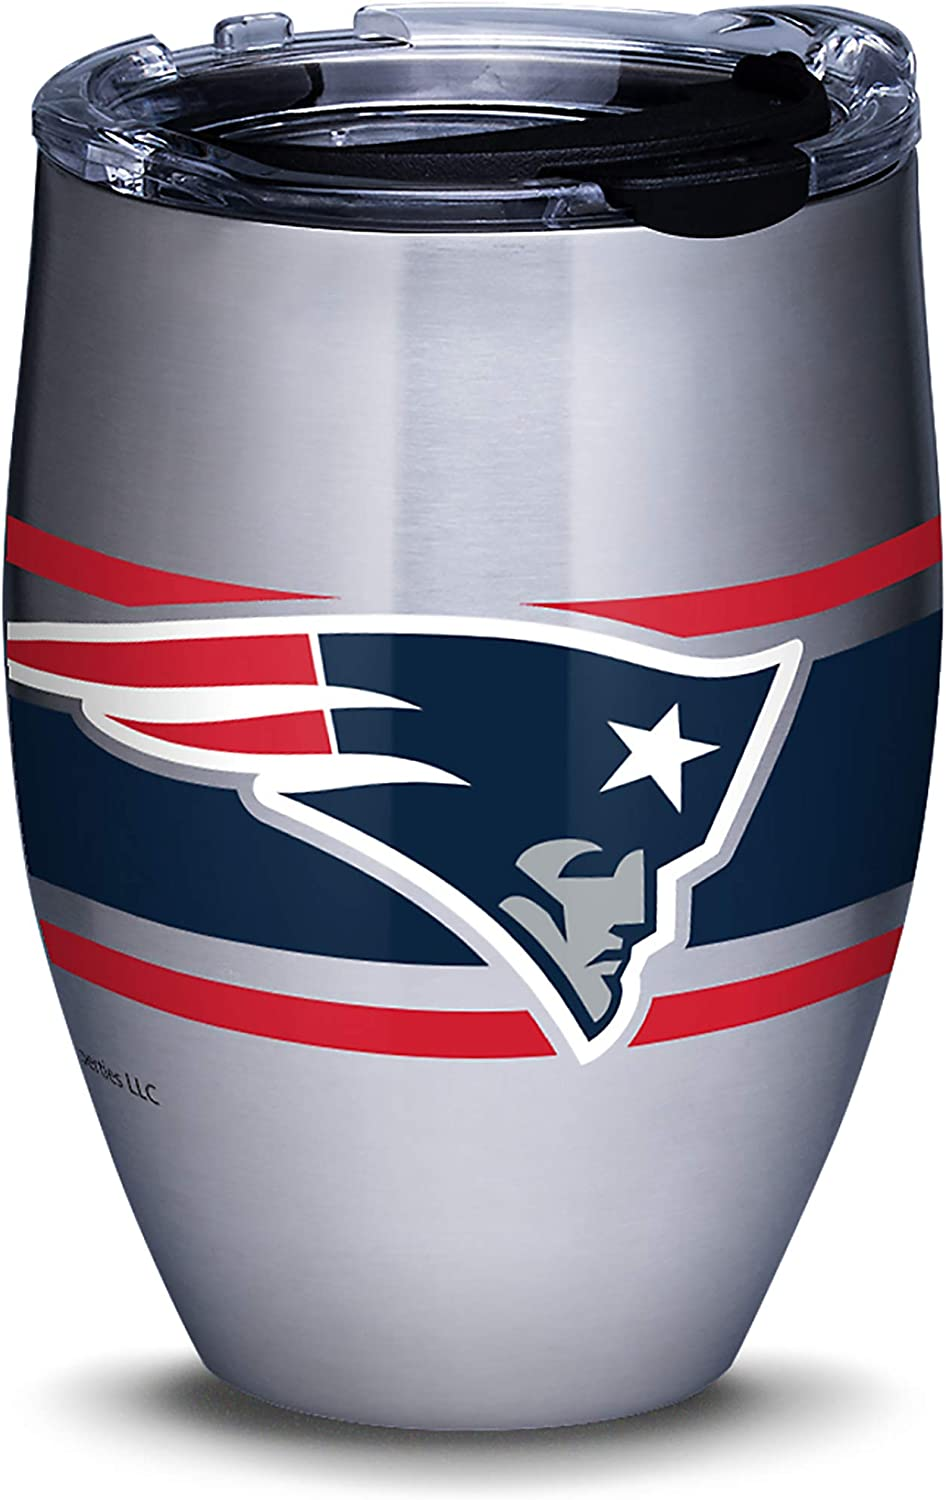 Tervis NFL New England Patriots Stripes Insulated Travel Tumbler with Lid, 12oz - Stainless Steel, Silver